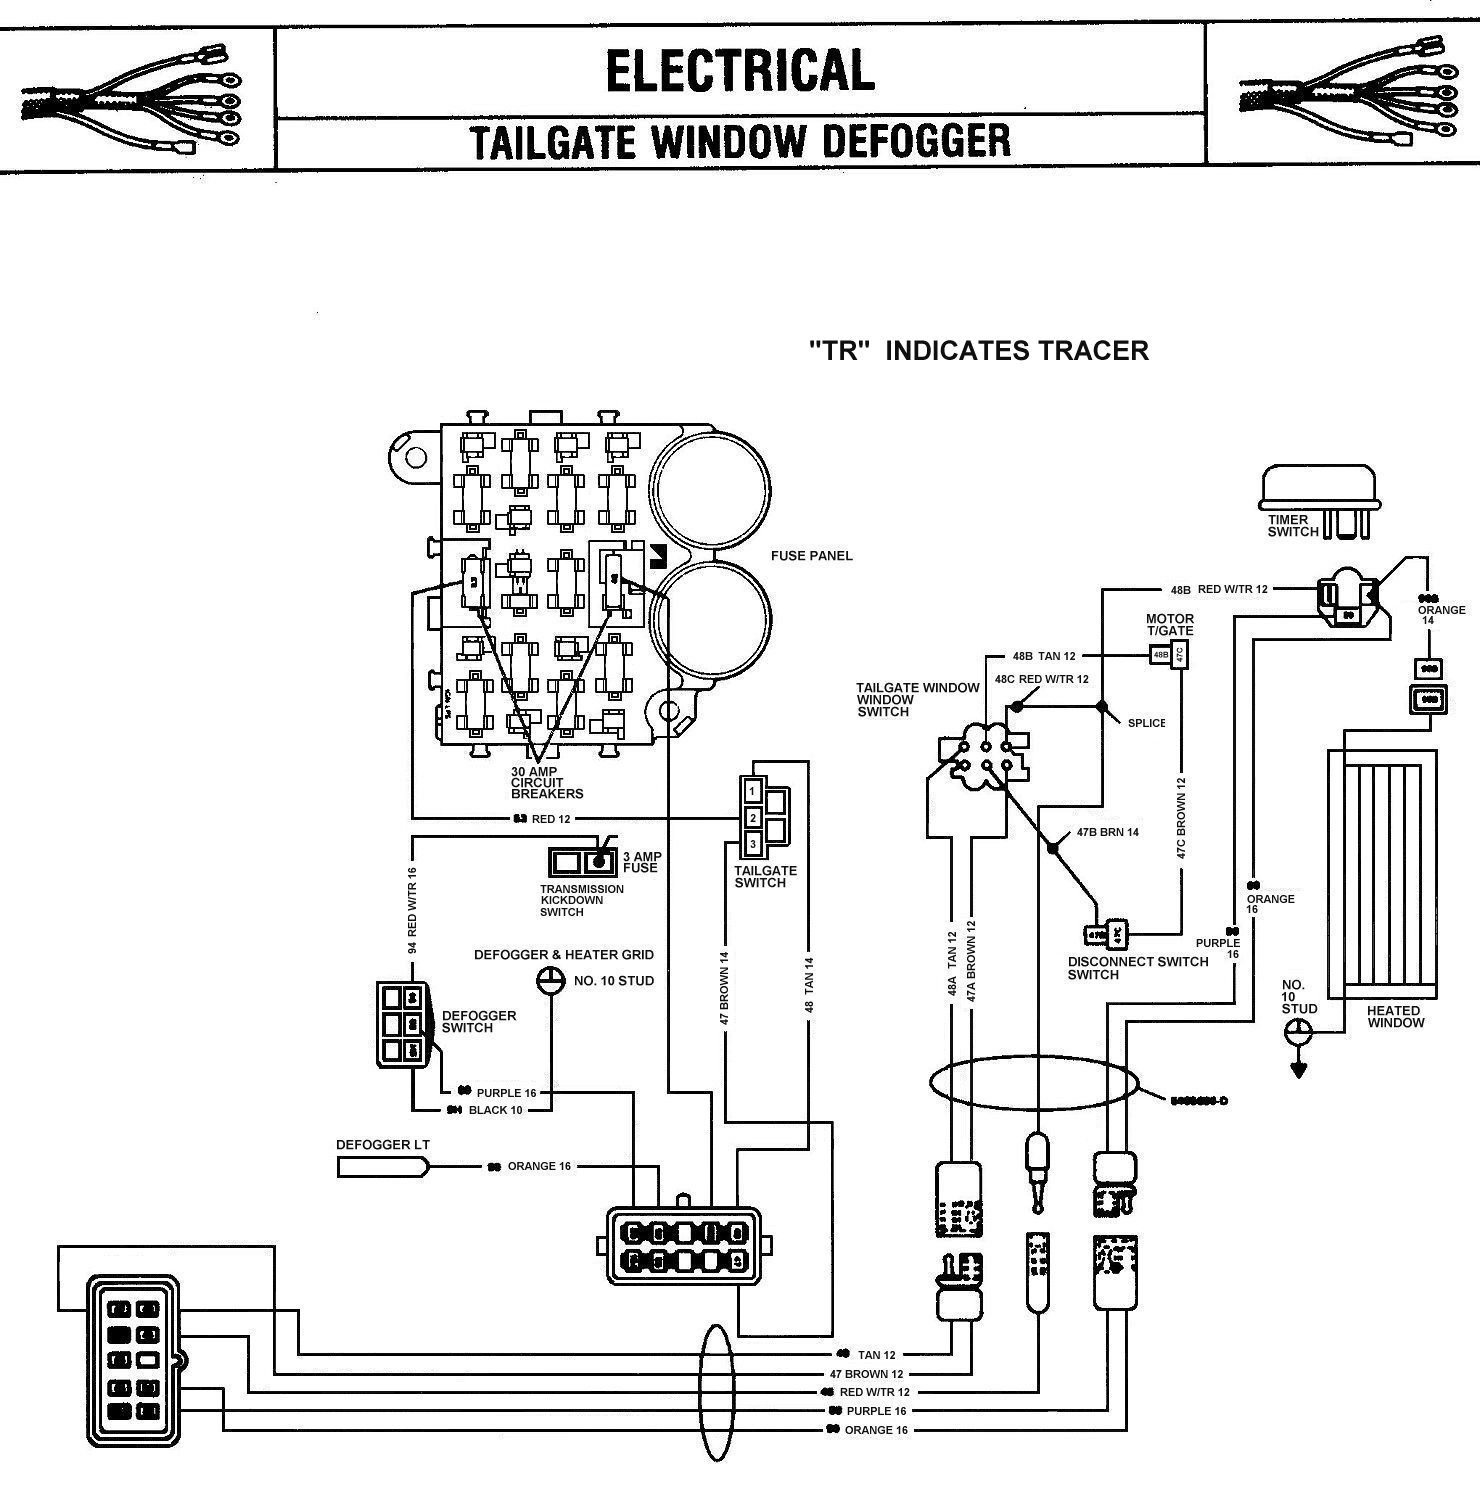 tom oljeep collins fsj wiring page rh oljeep com 1988 jeep grand wagoneer wiring diagram 1988 jeep grand wagoneer wiring diagram